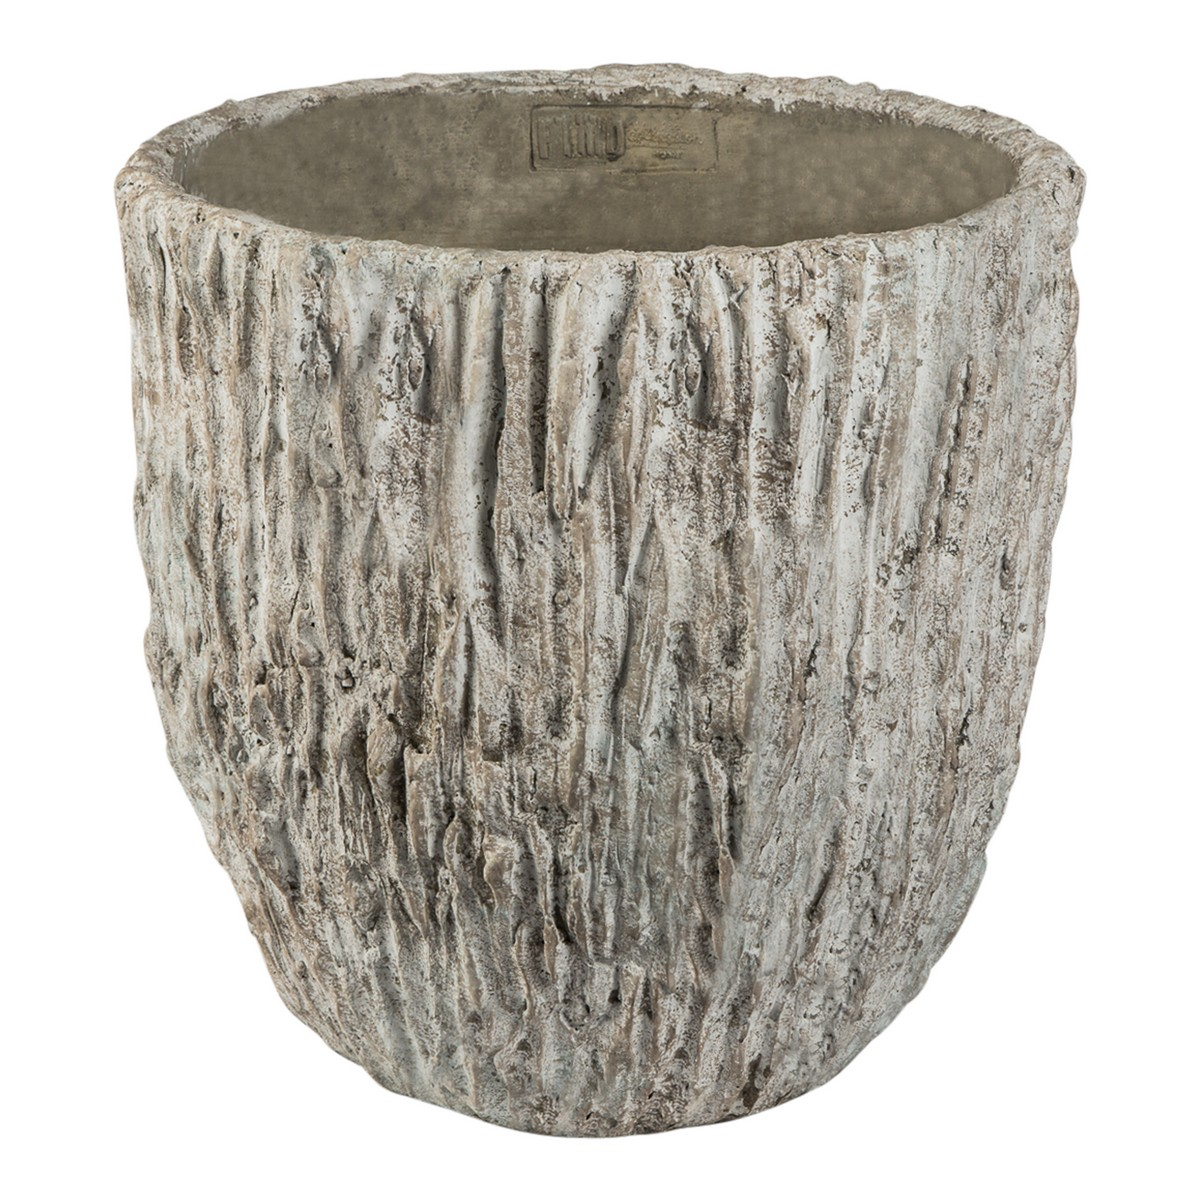 PTMD/Rocky grey cement round pot/666938【01】【取寄】